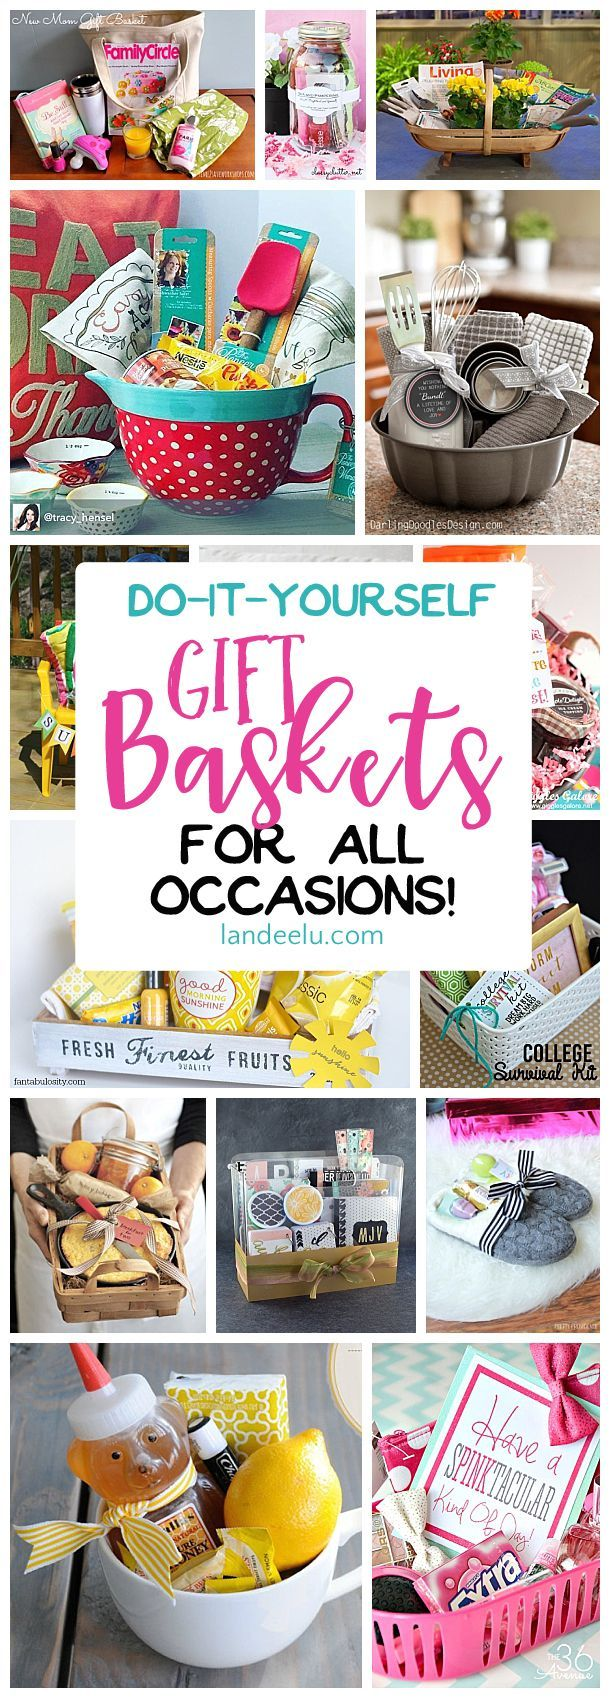 Put together a gift basket for any occasion and make someones day! Easy do it